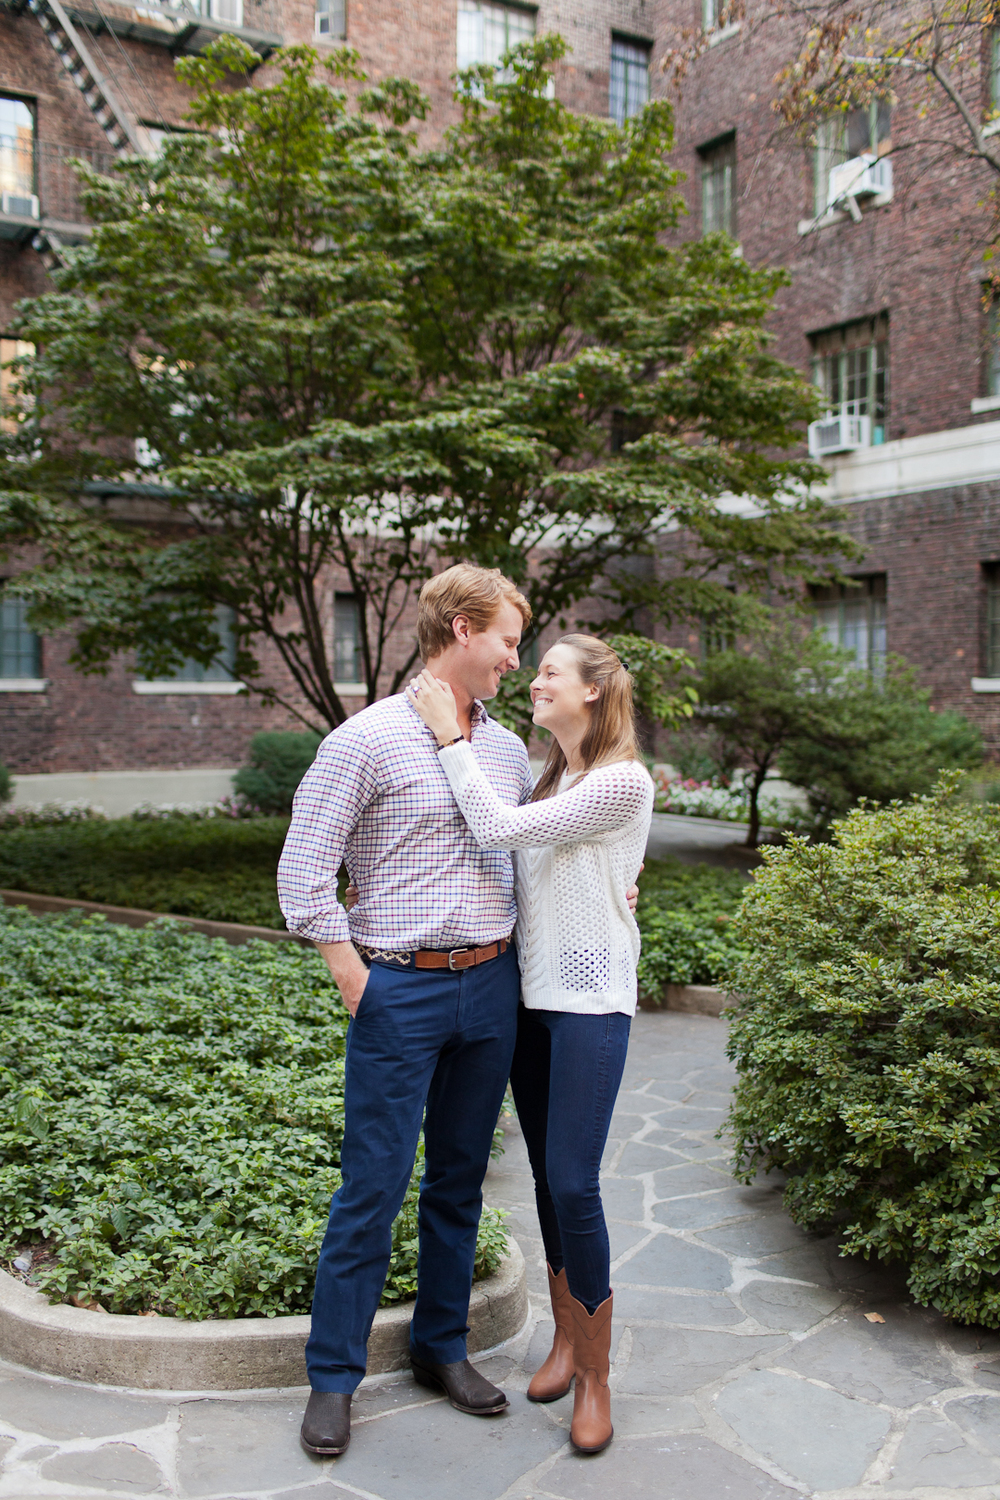 Melissa Kruse Photography - Megan & Tyler West Village Engagement Photos-5.jpg